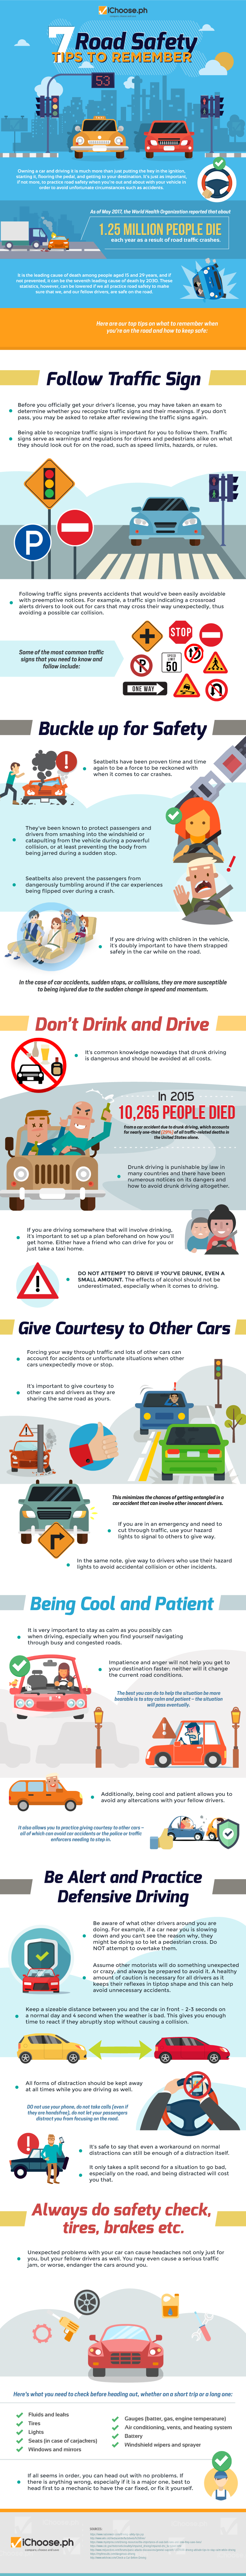 How To Be Safe On The Road - Infographic